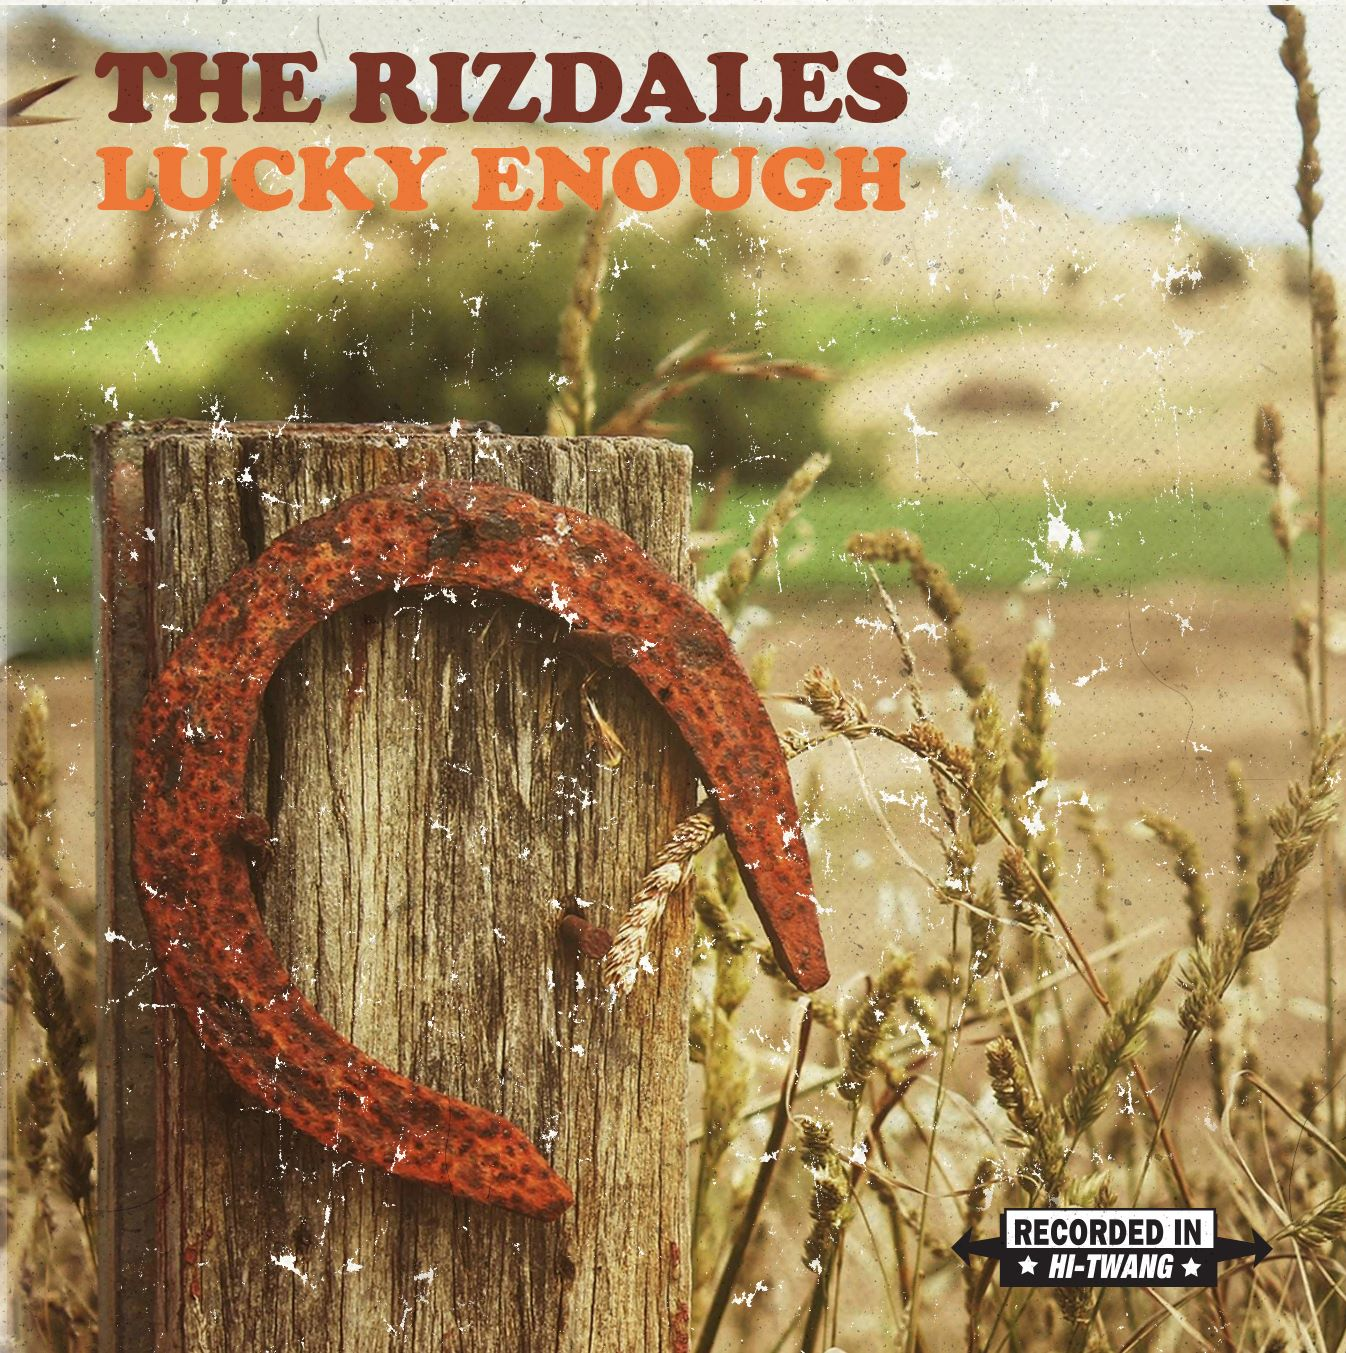 The Rizdales